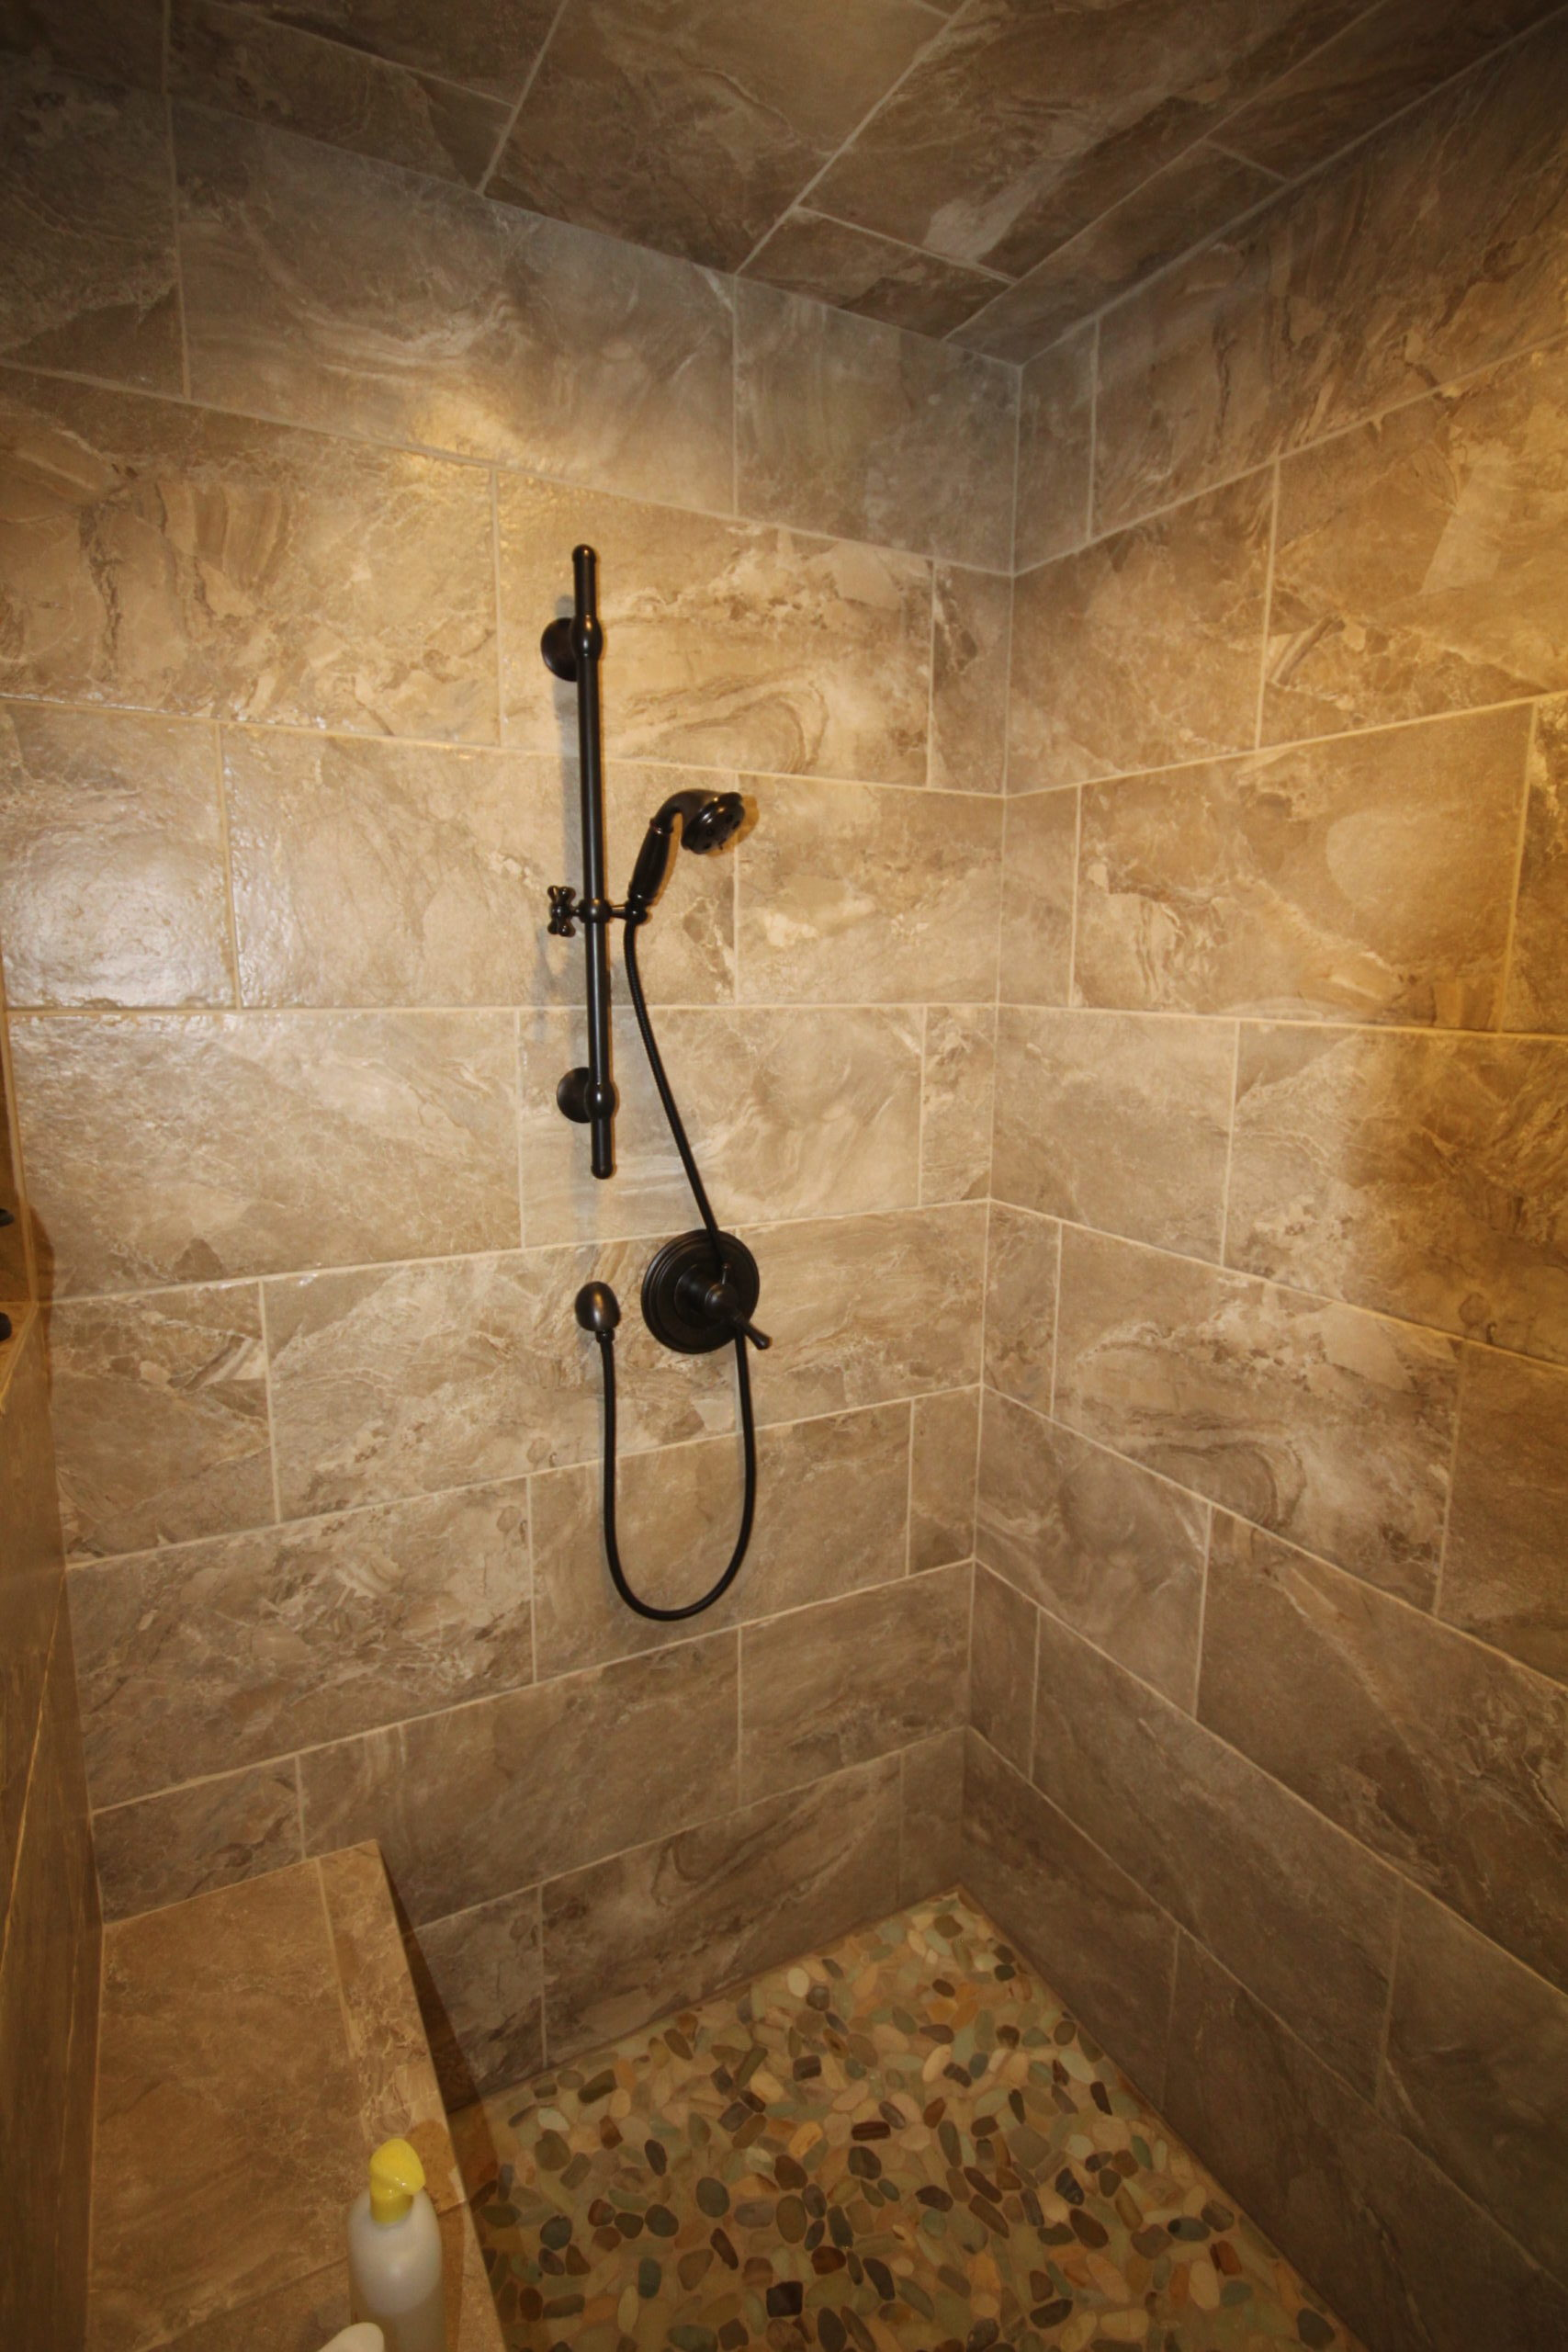 bathroom-remodeling-work-TAG-Builders-104-WW-Bathroom-remodel-1-scaled-e1586518130876